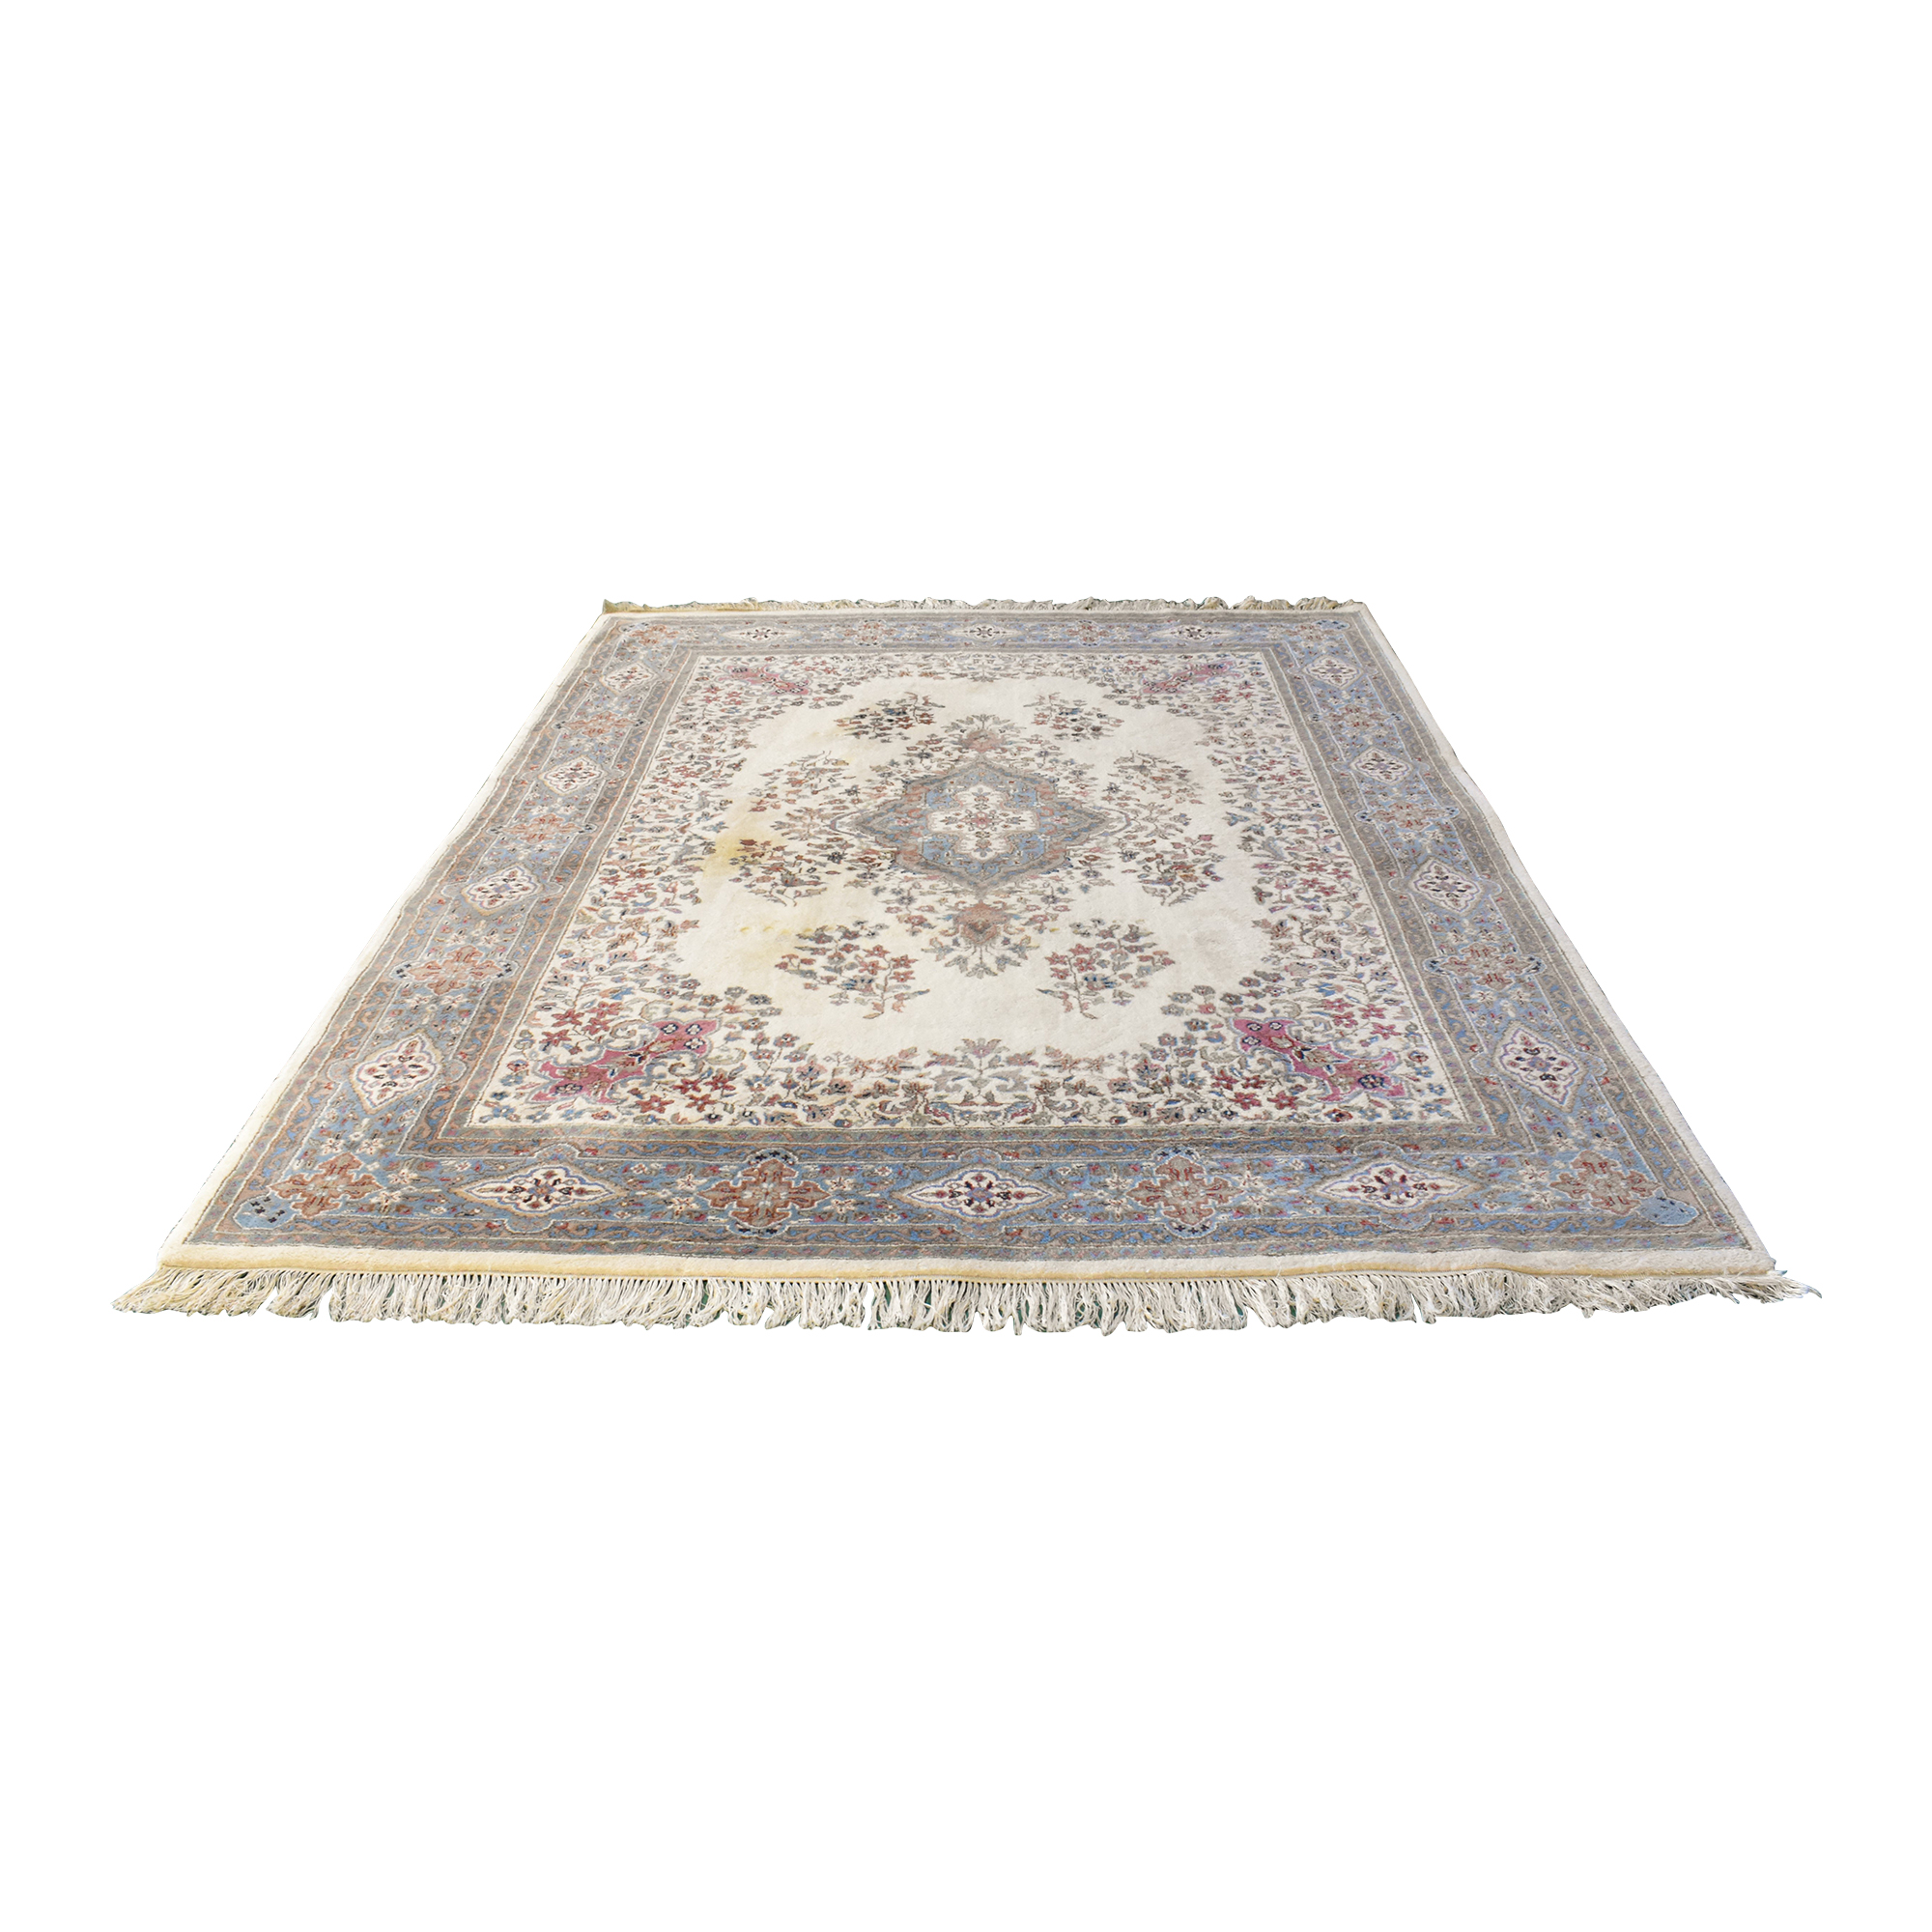 Persian-Style Area Rug / Rugs